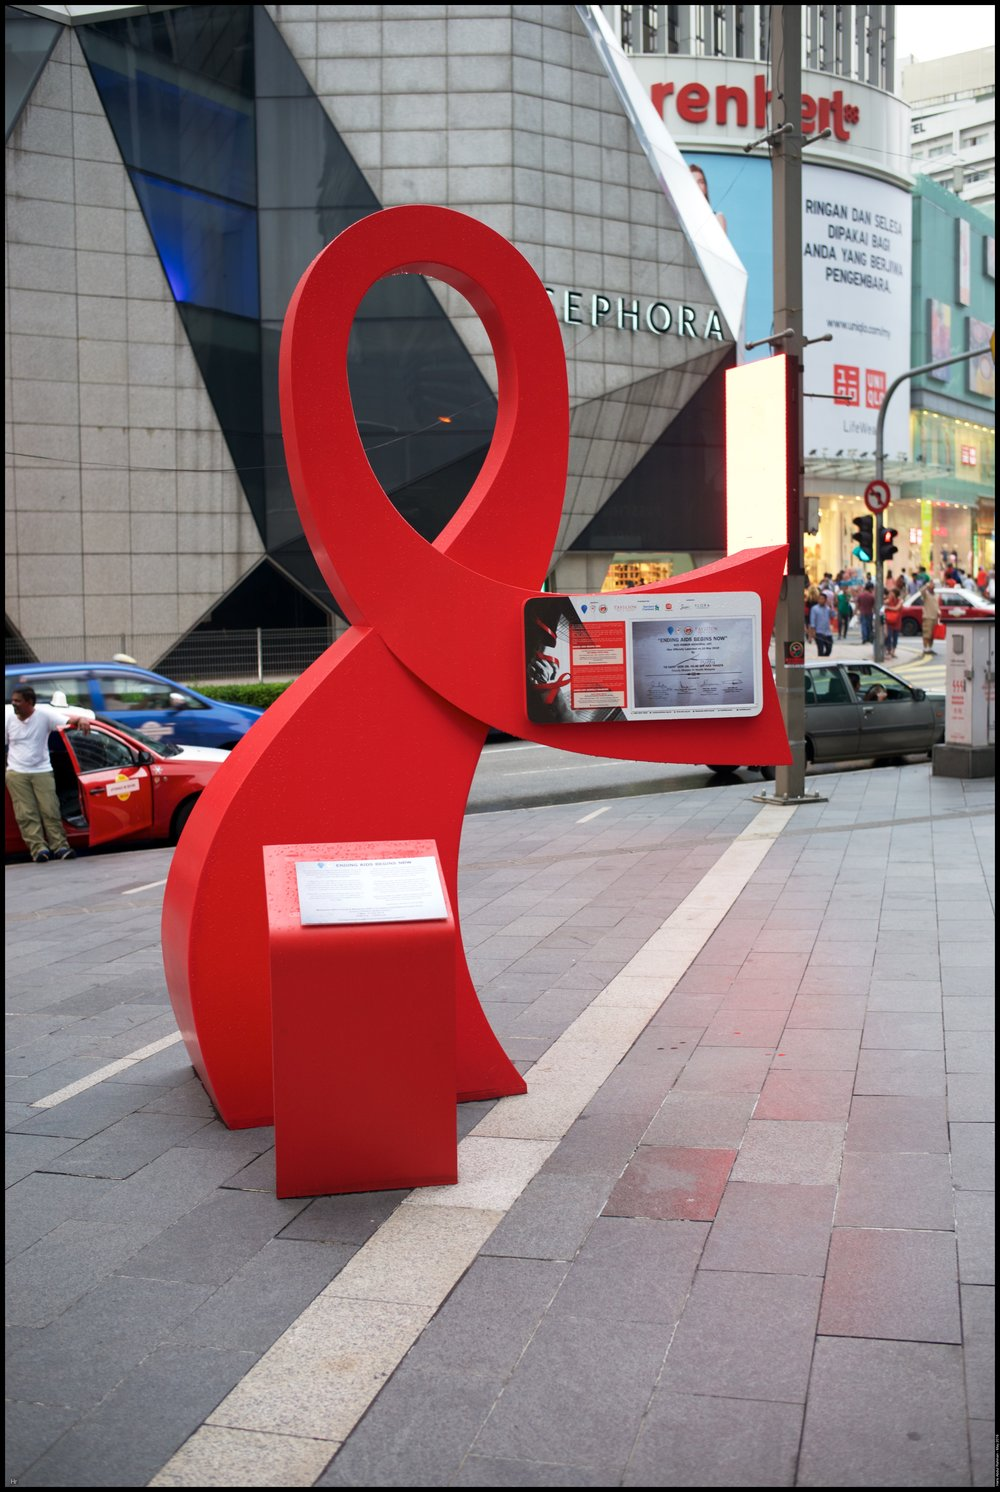 The big ribbon for the HIV week